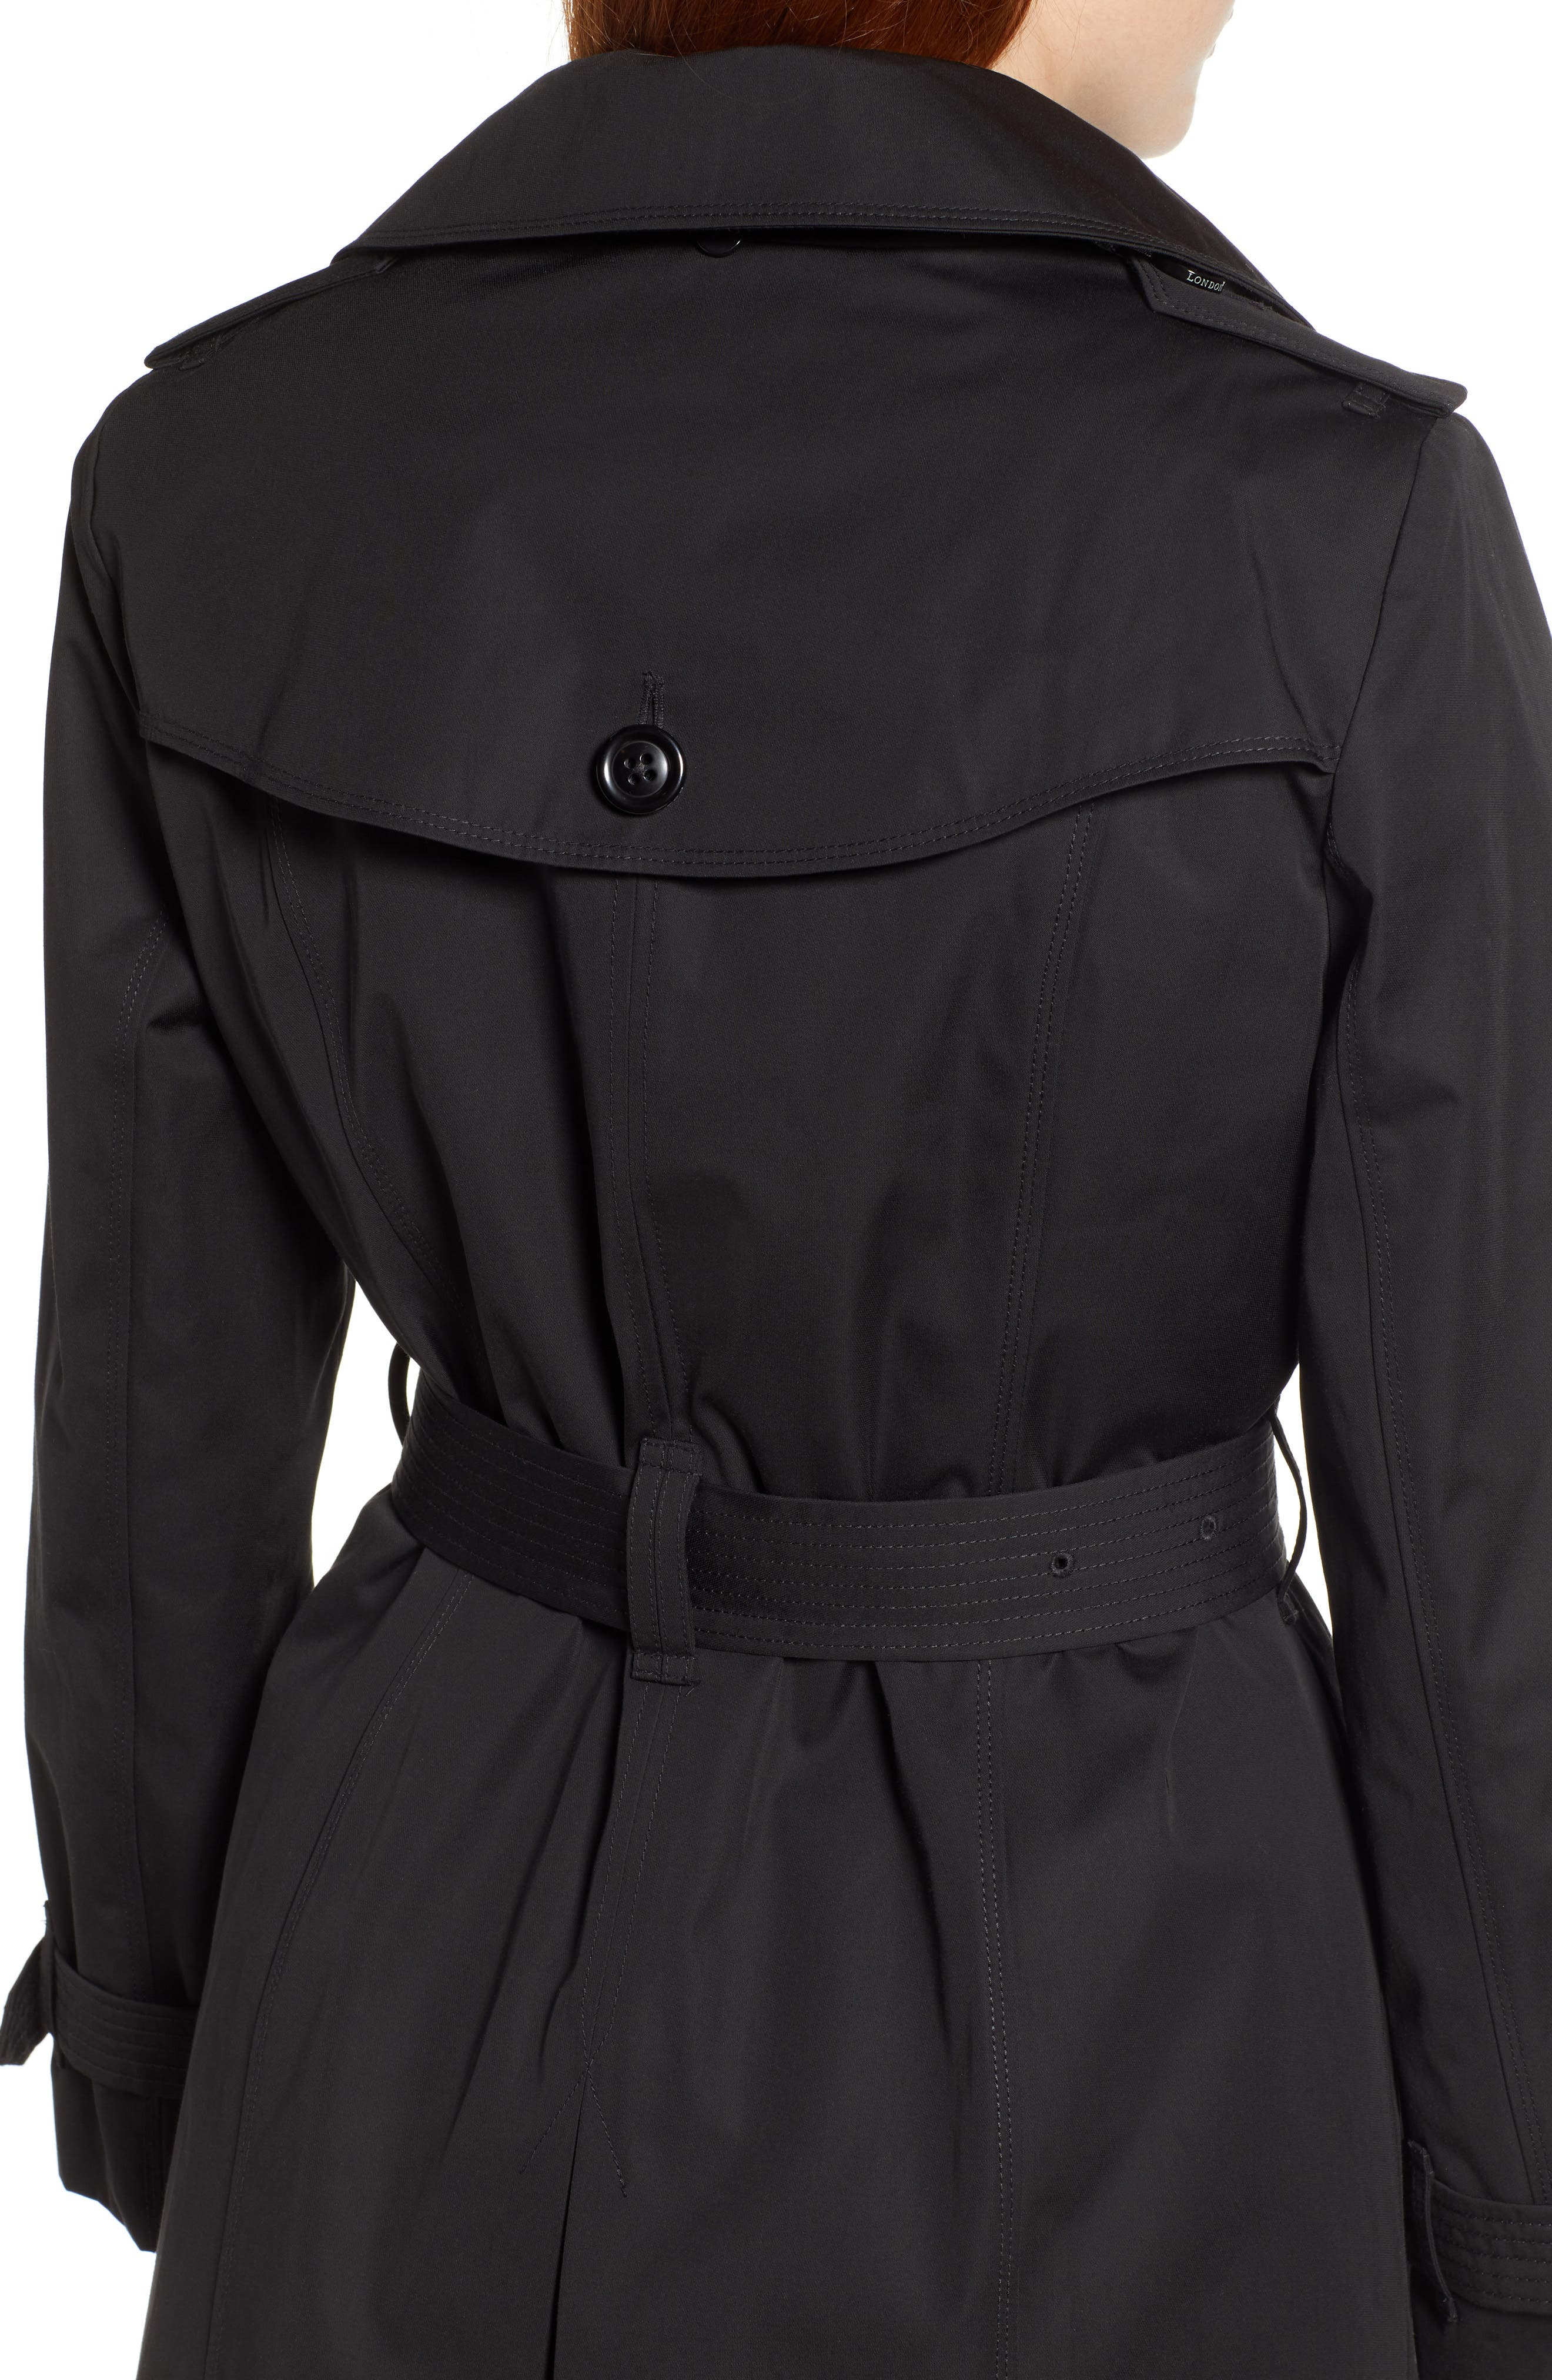 LONDON FOG, Trench Coat with Detachable Liner & Hood, Alternate thumbnail 4, color, BLACK